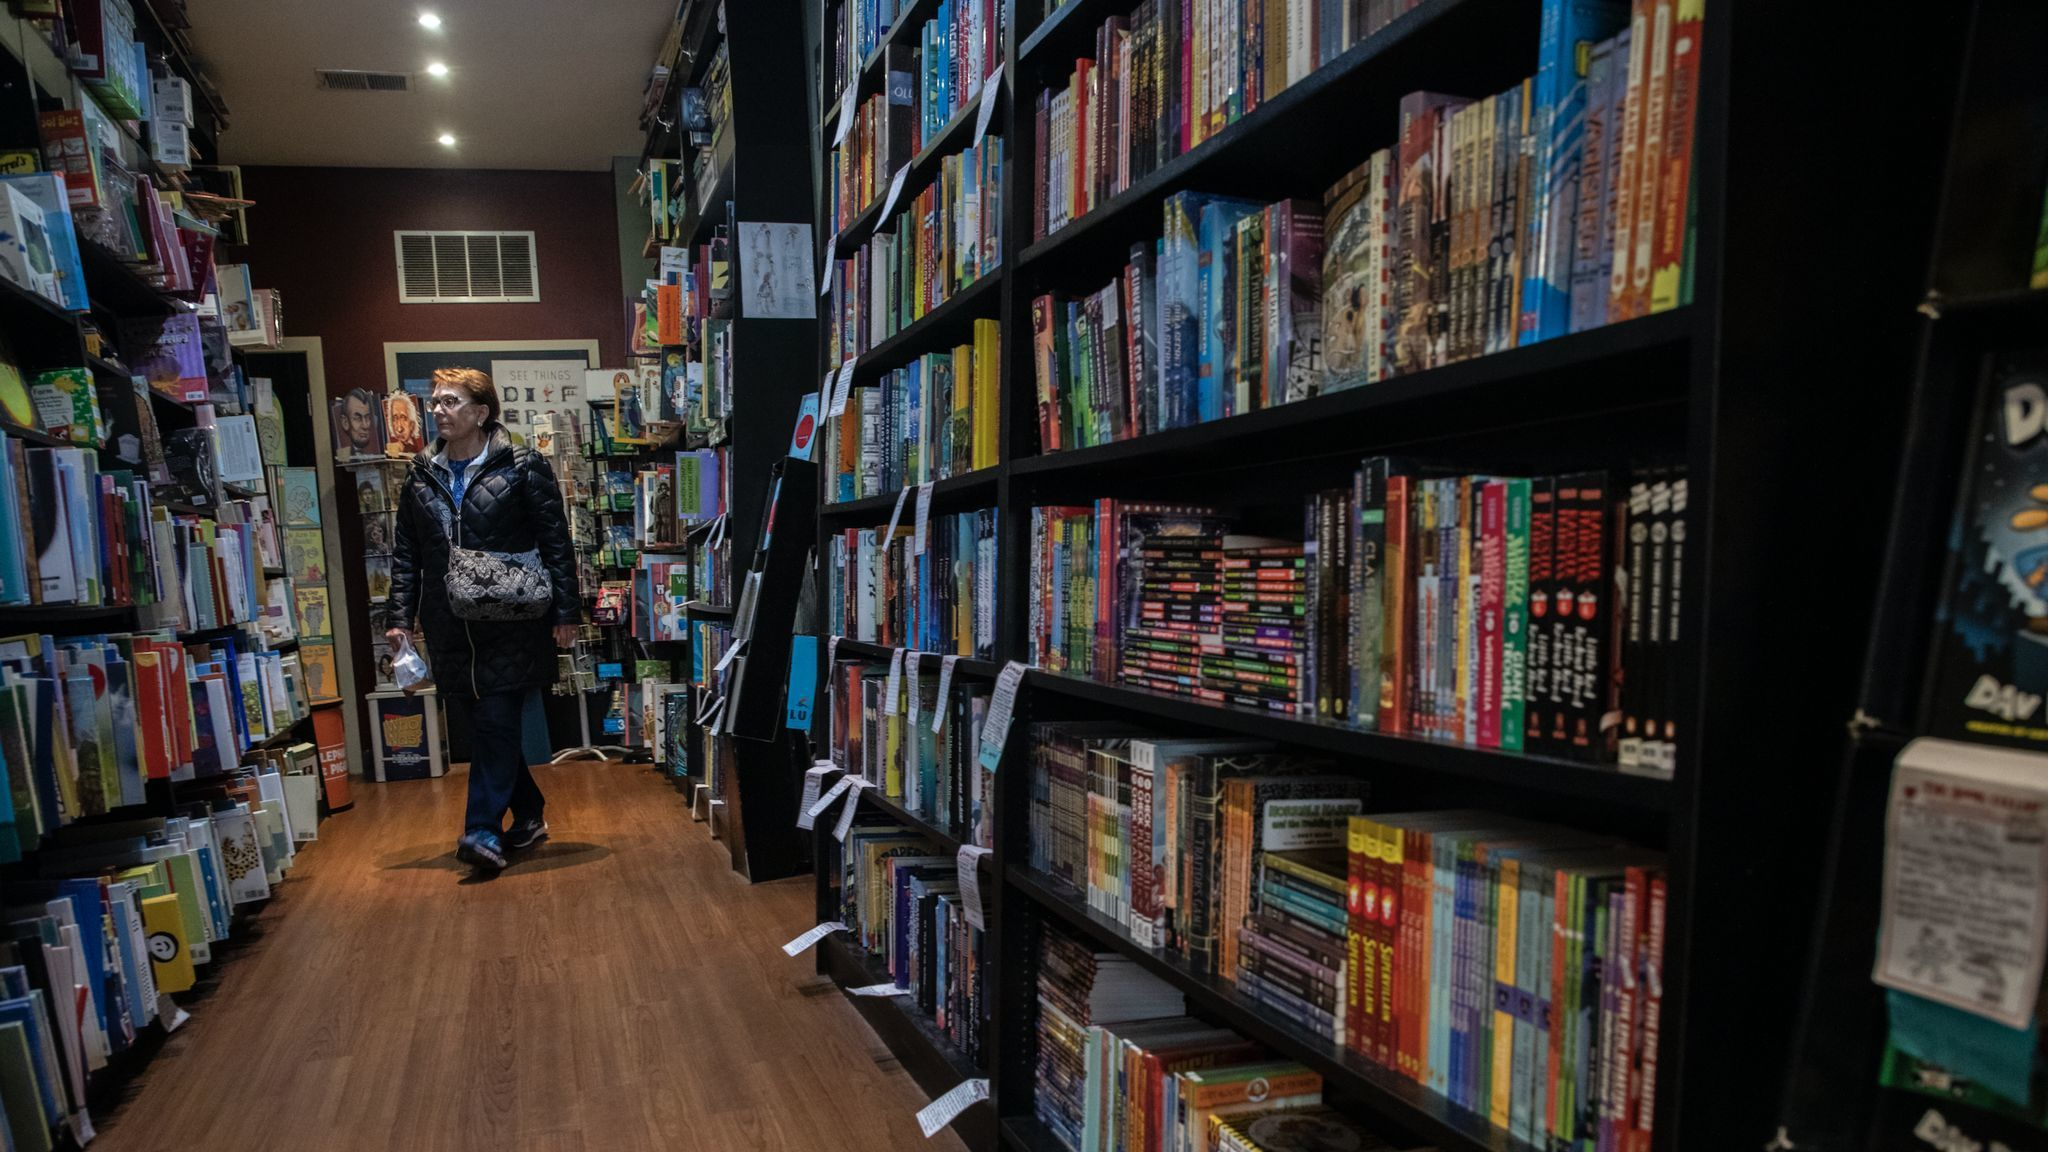 Sure, you could buy that book online for $15. But here's what that book really costs us.